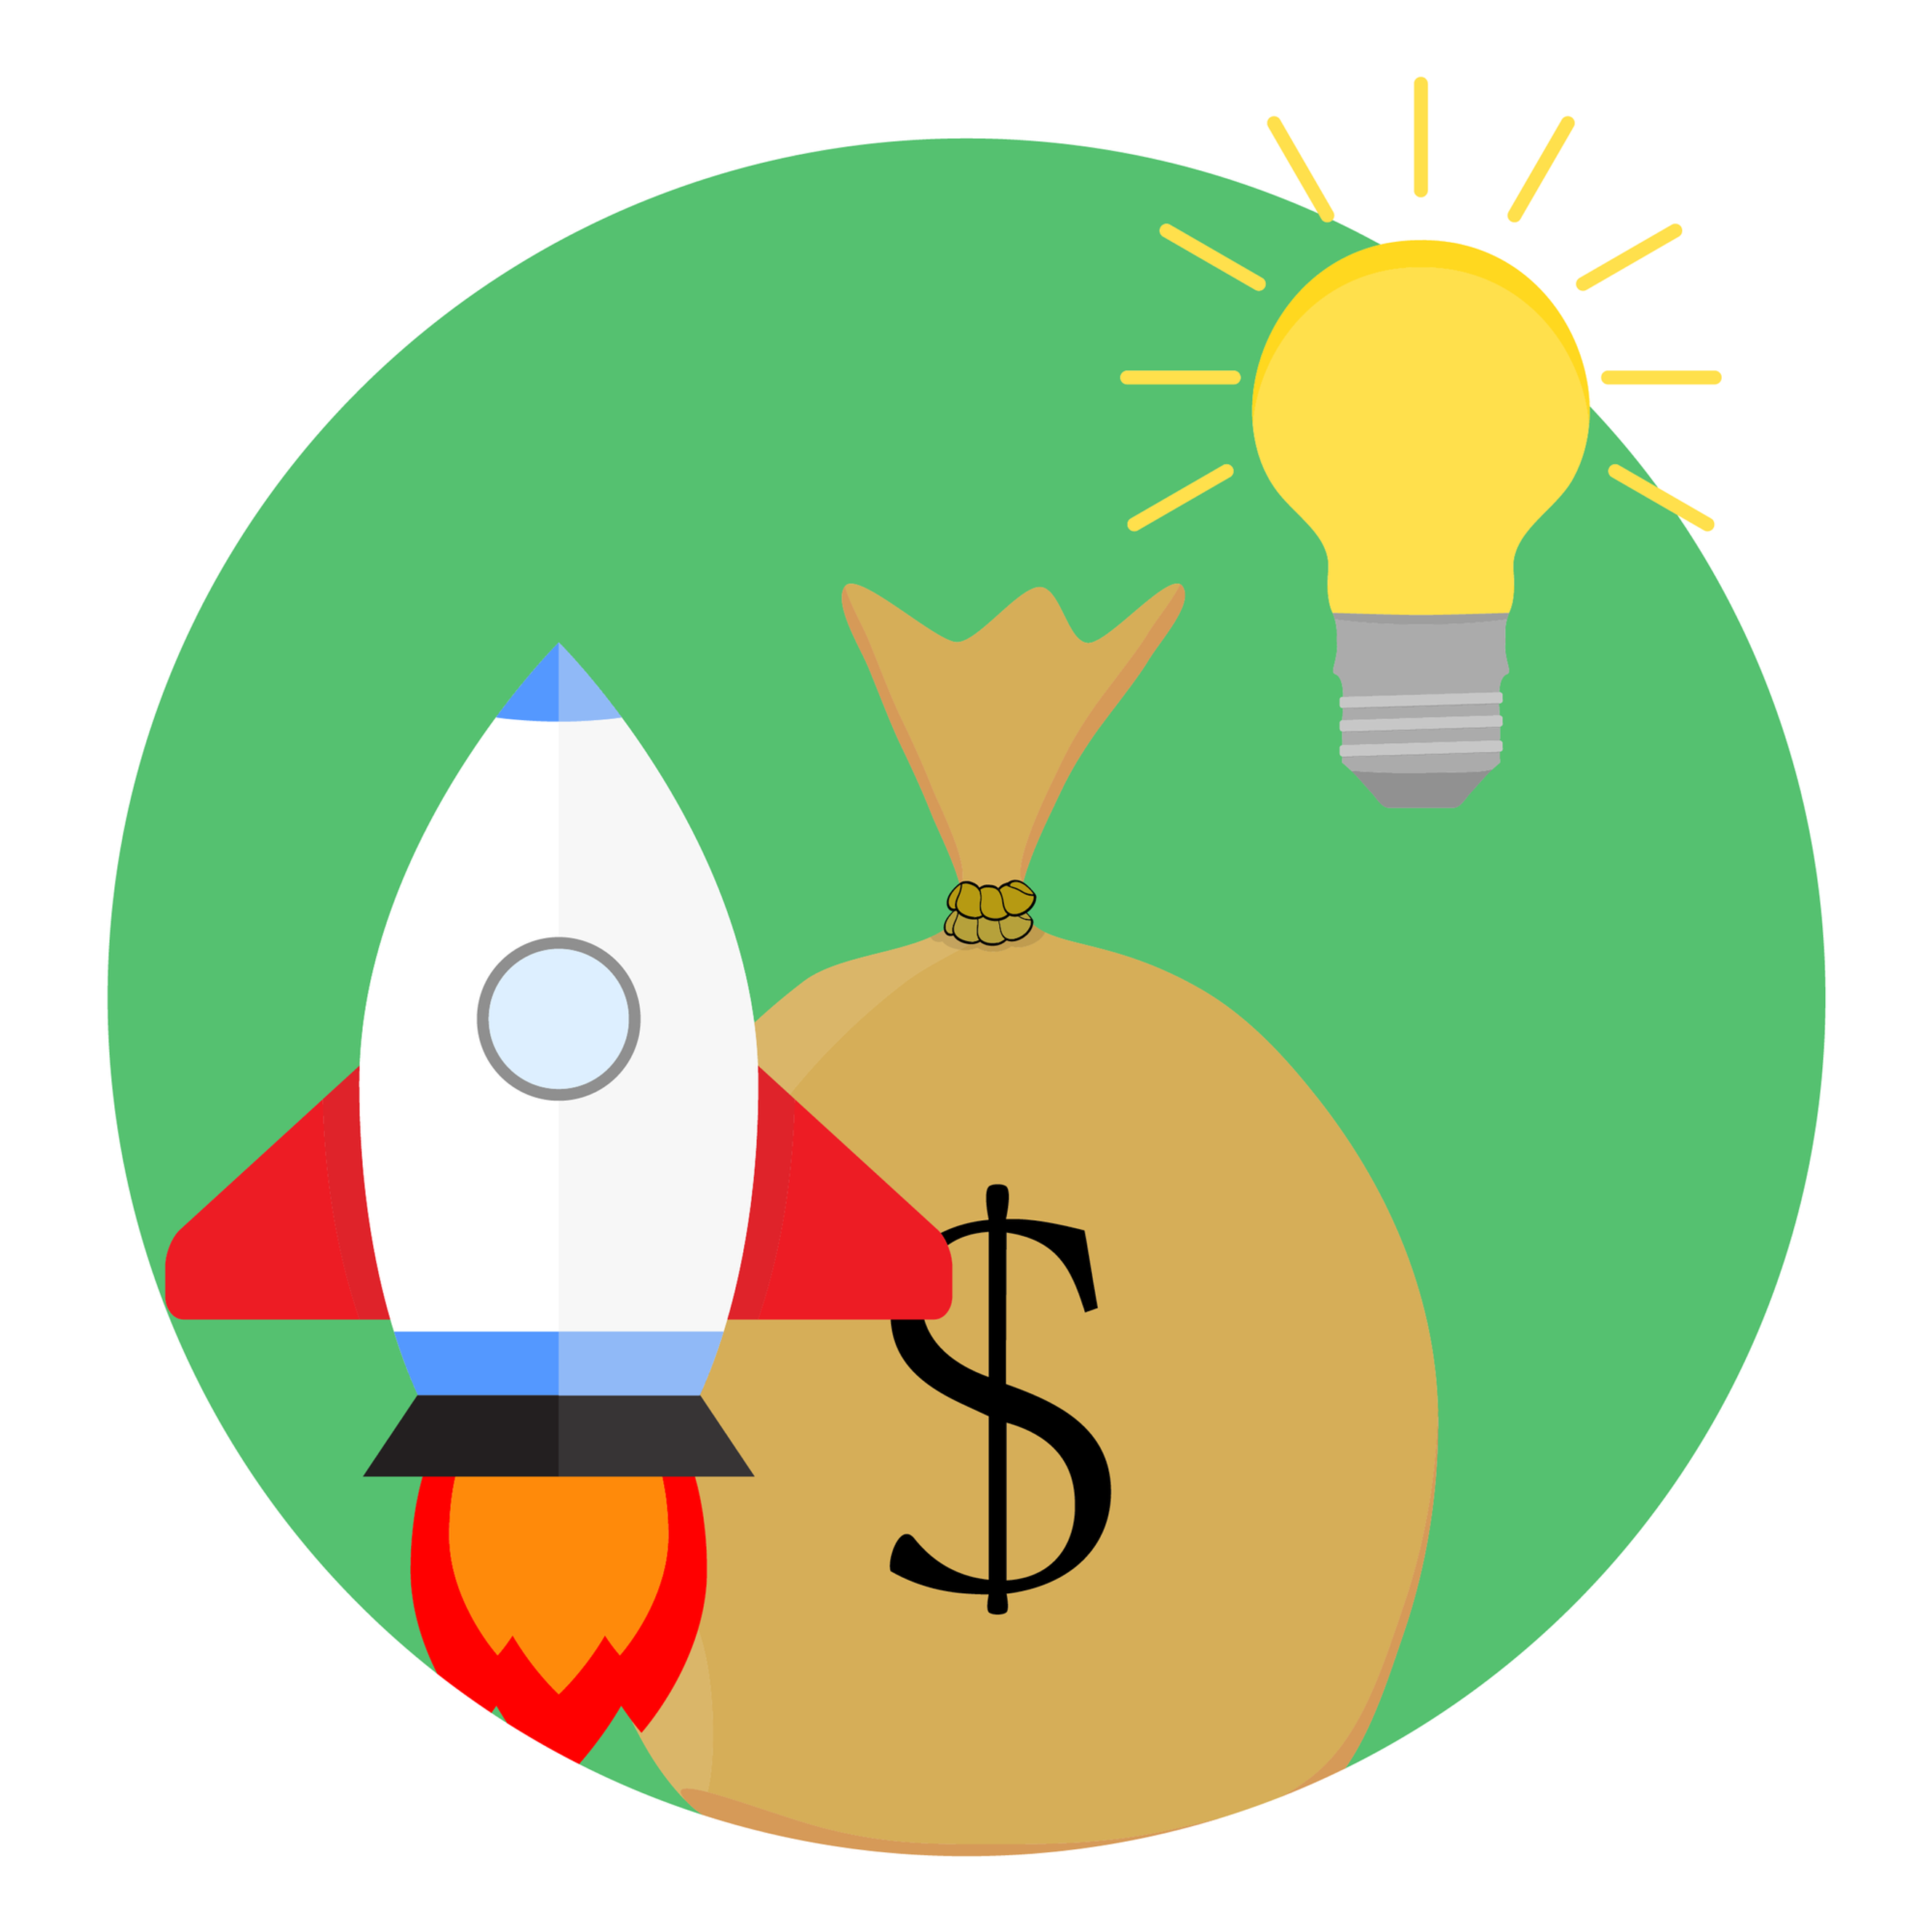 Startup and Small Business Services